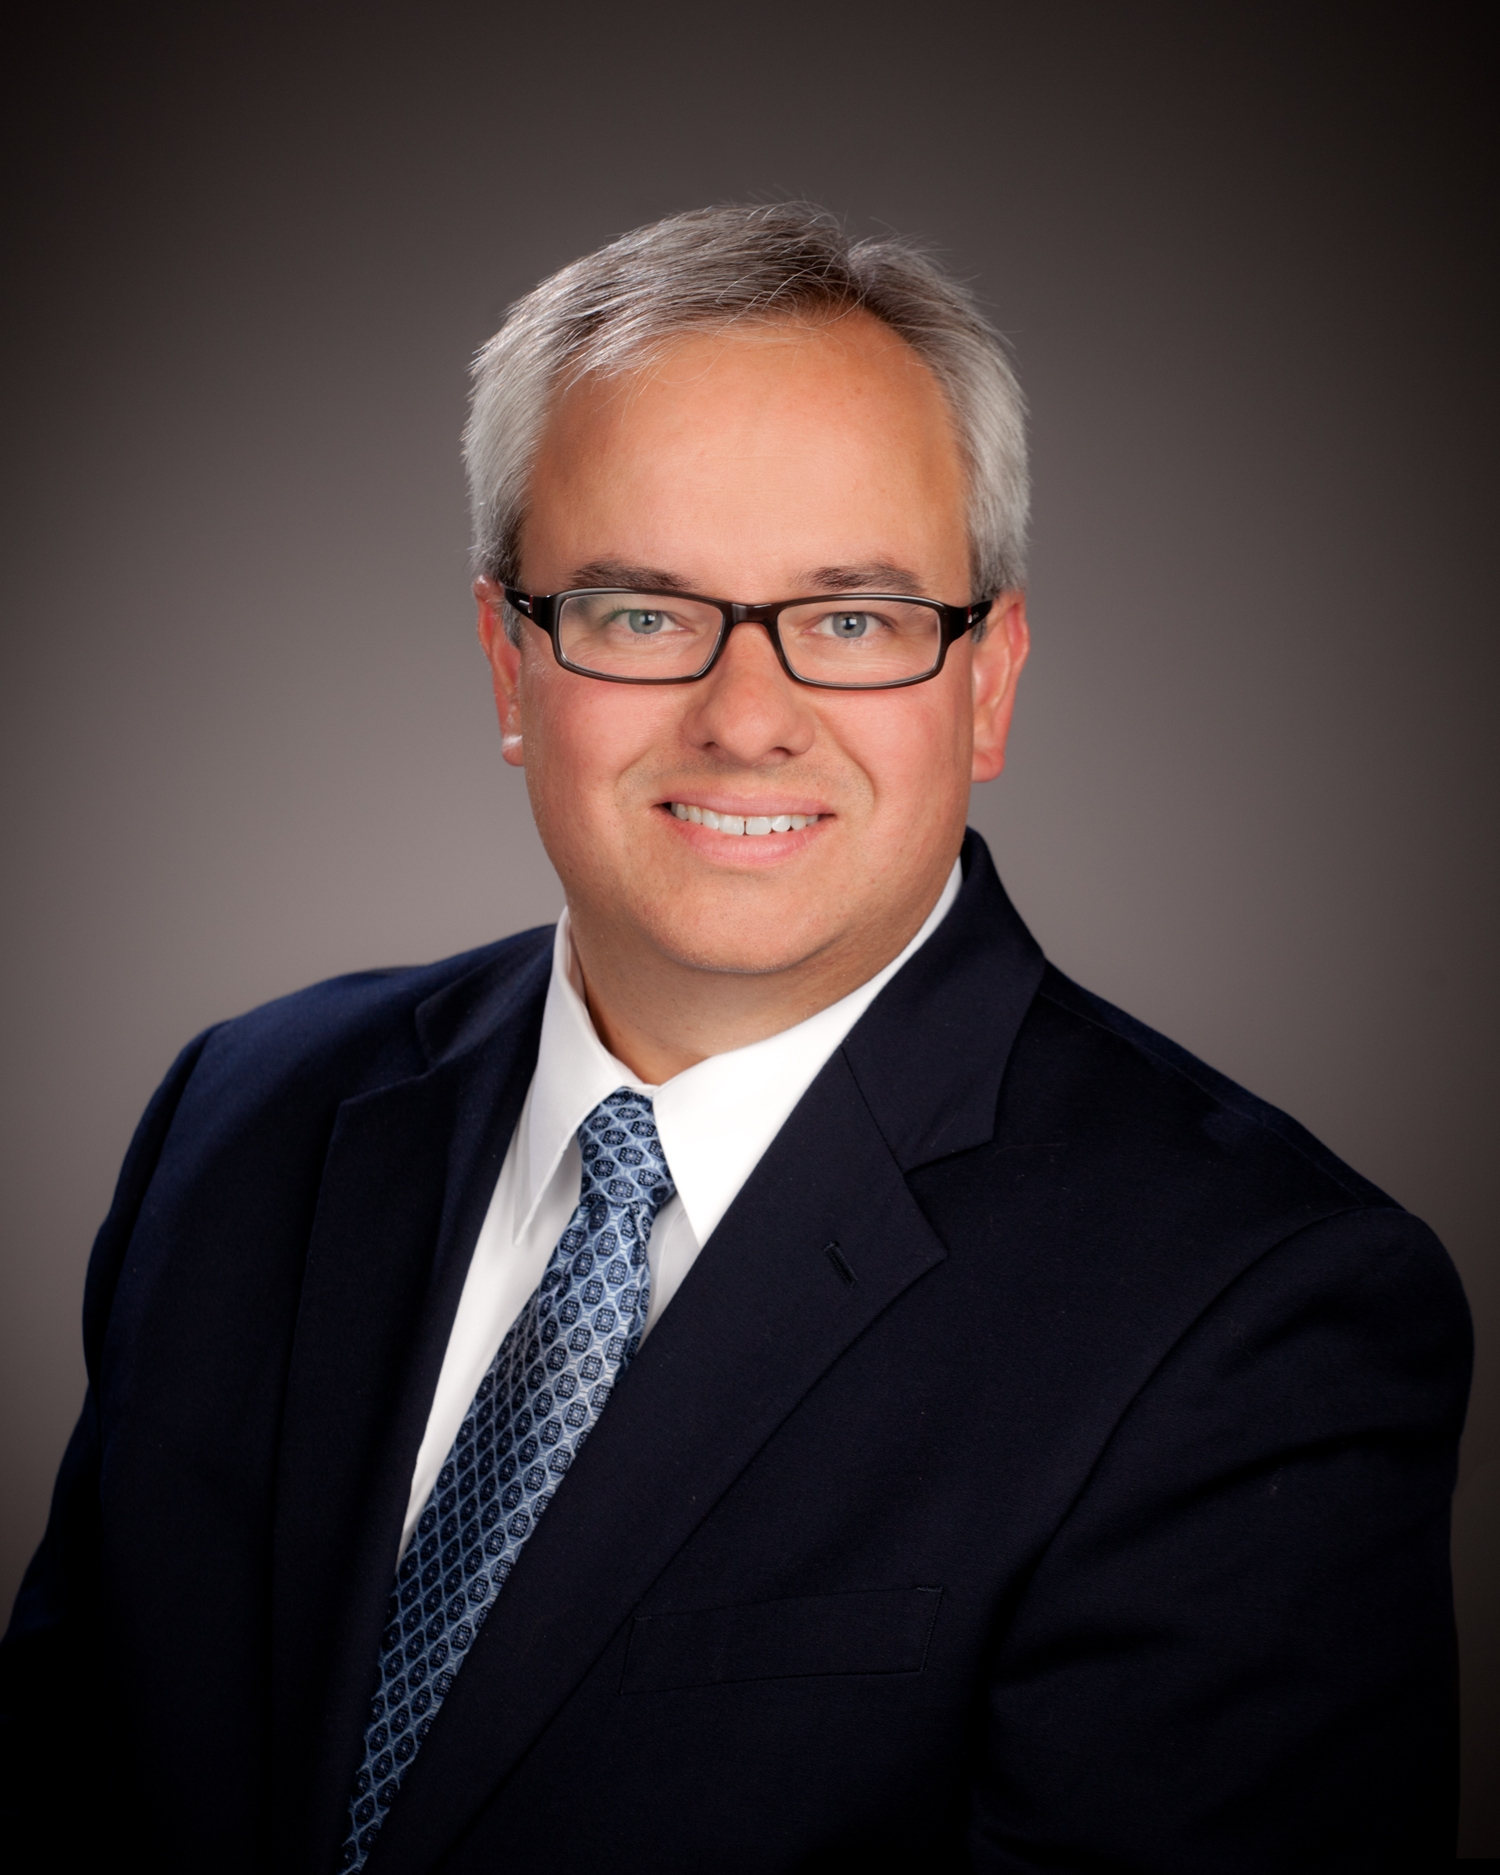 Mark Ponder was recently hired as a Senior Vice President and Controller for Enterprise Financial Services Corp.